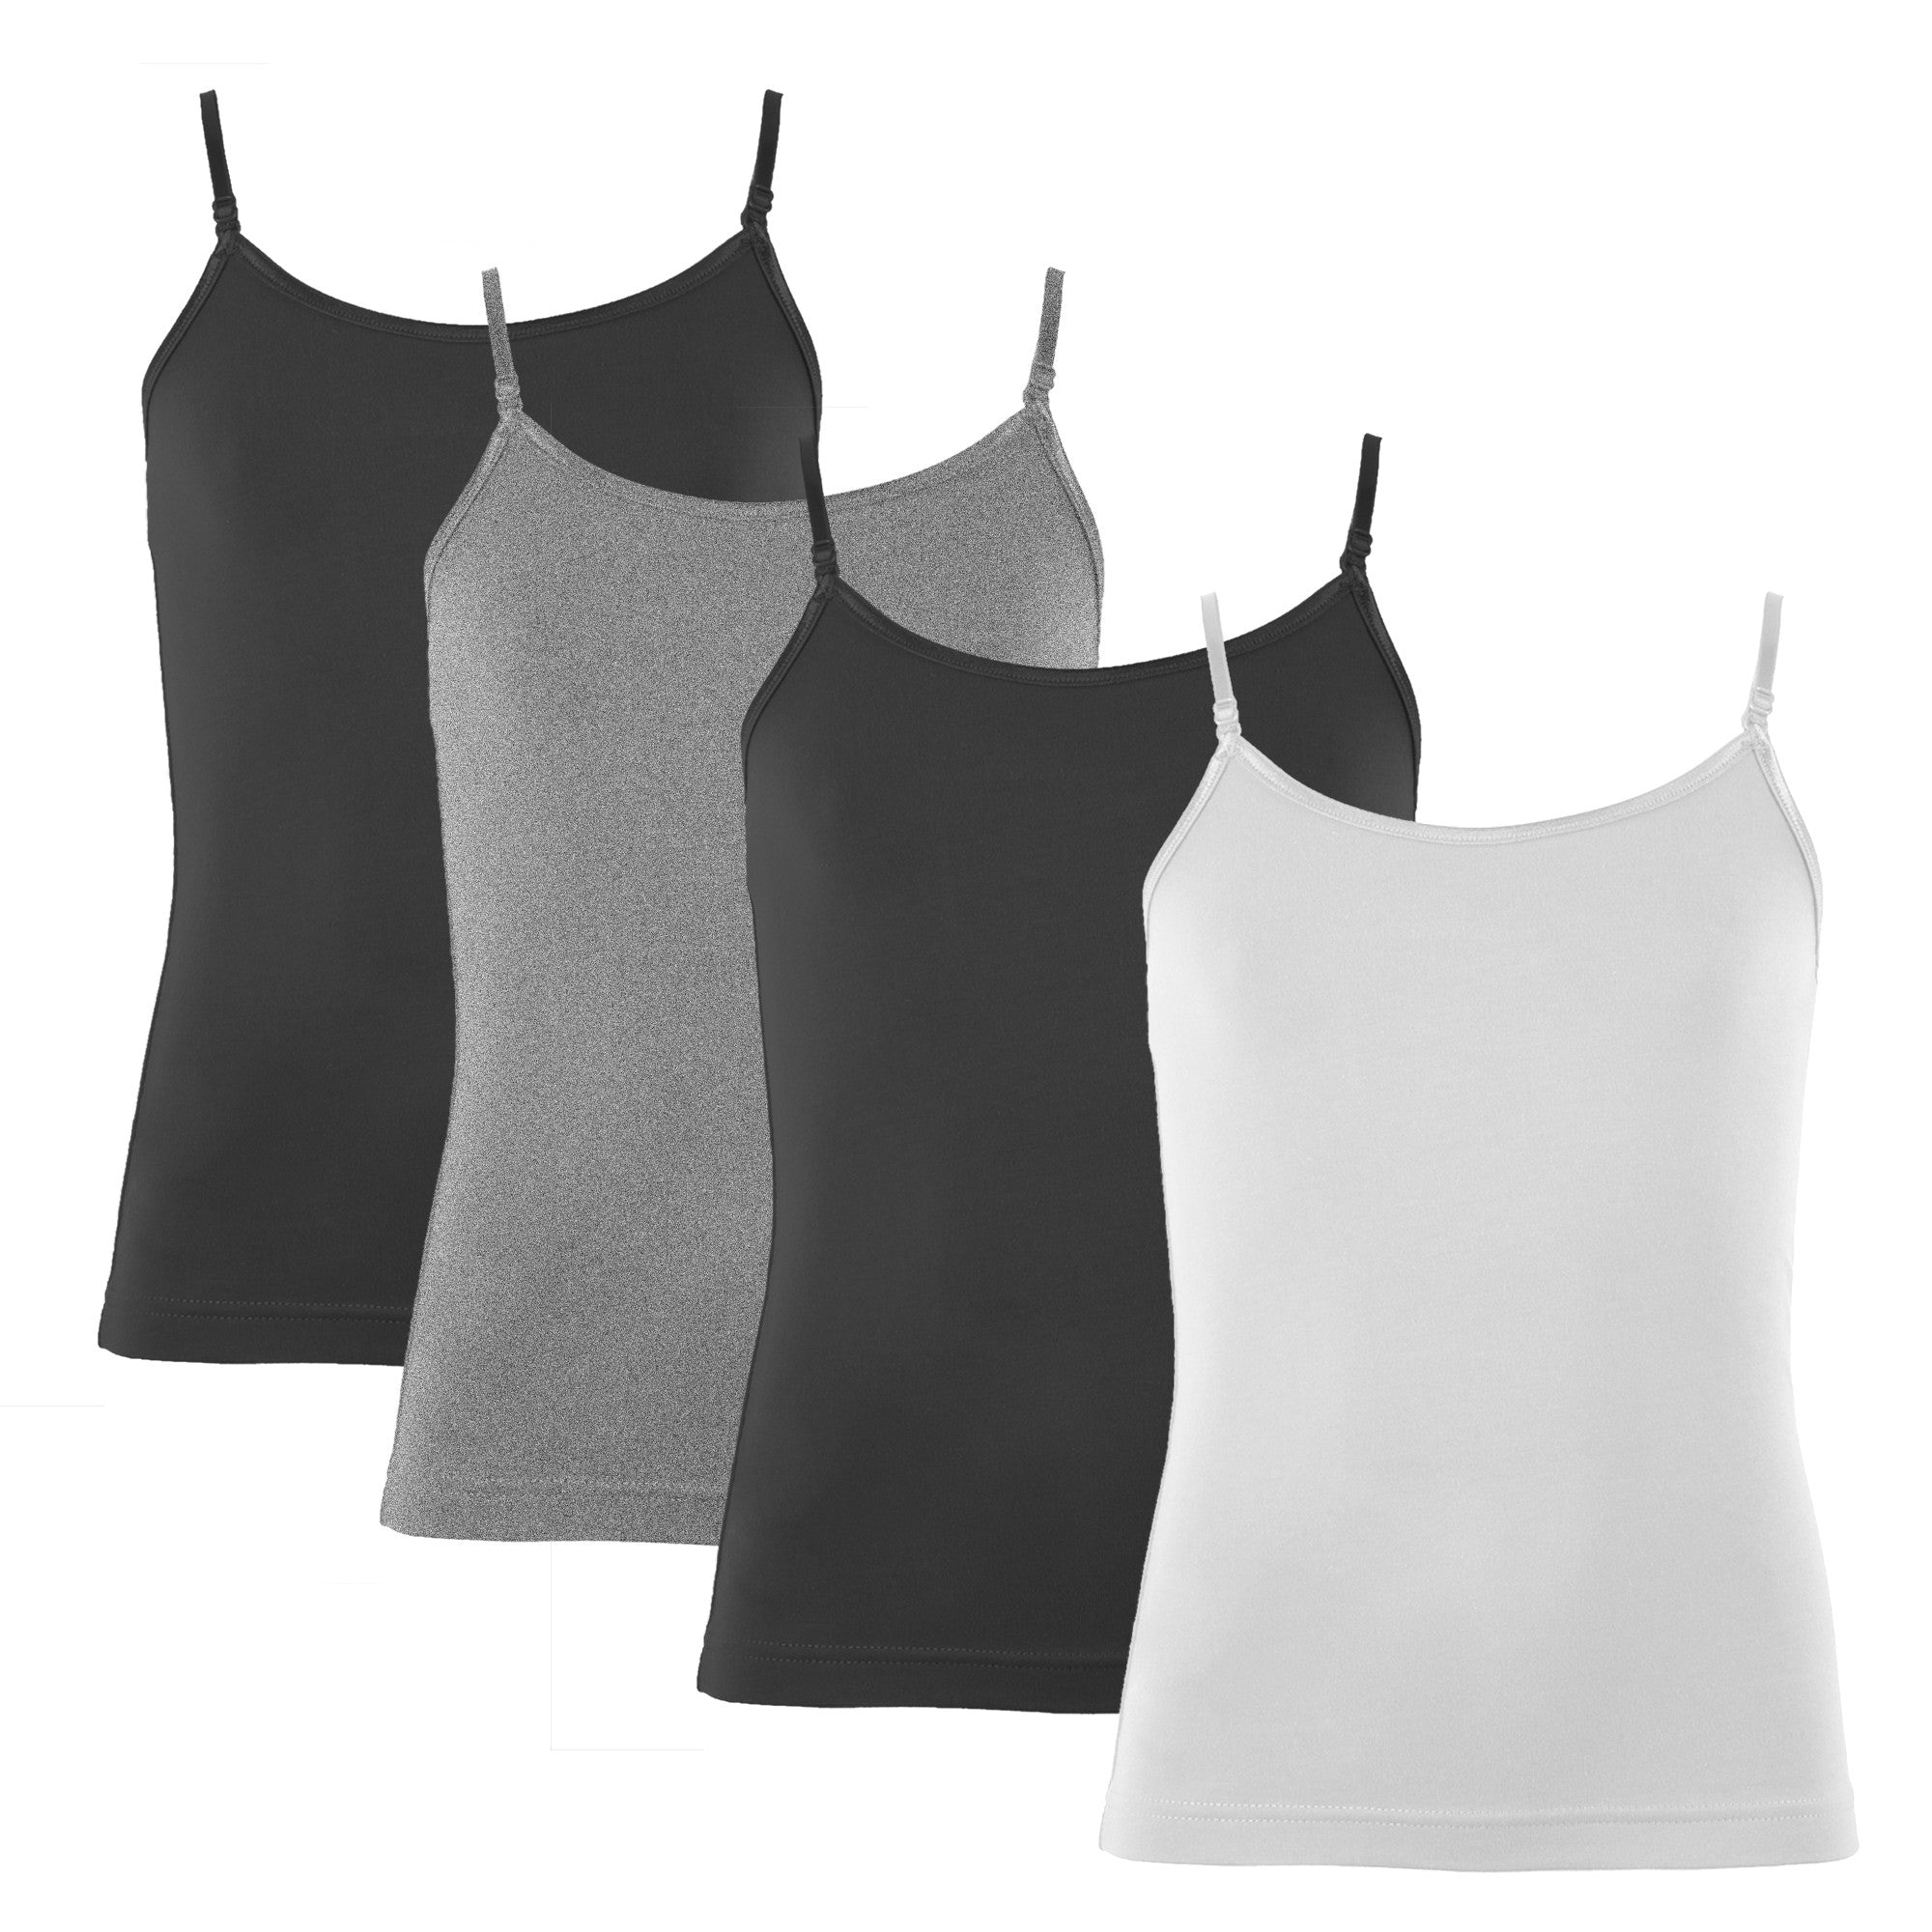 Popular Girl's Cotton Camisole with Adjustable Straps- 4 Pack